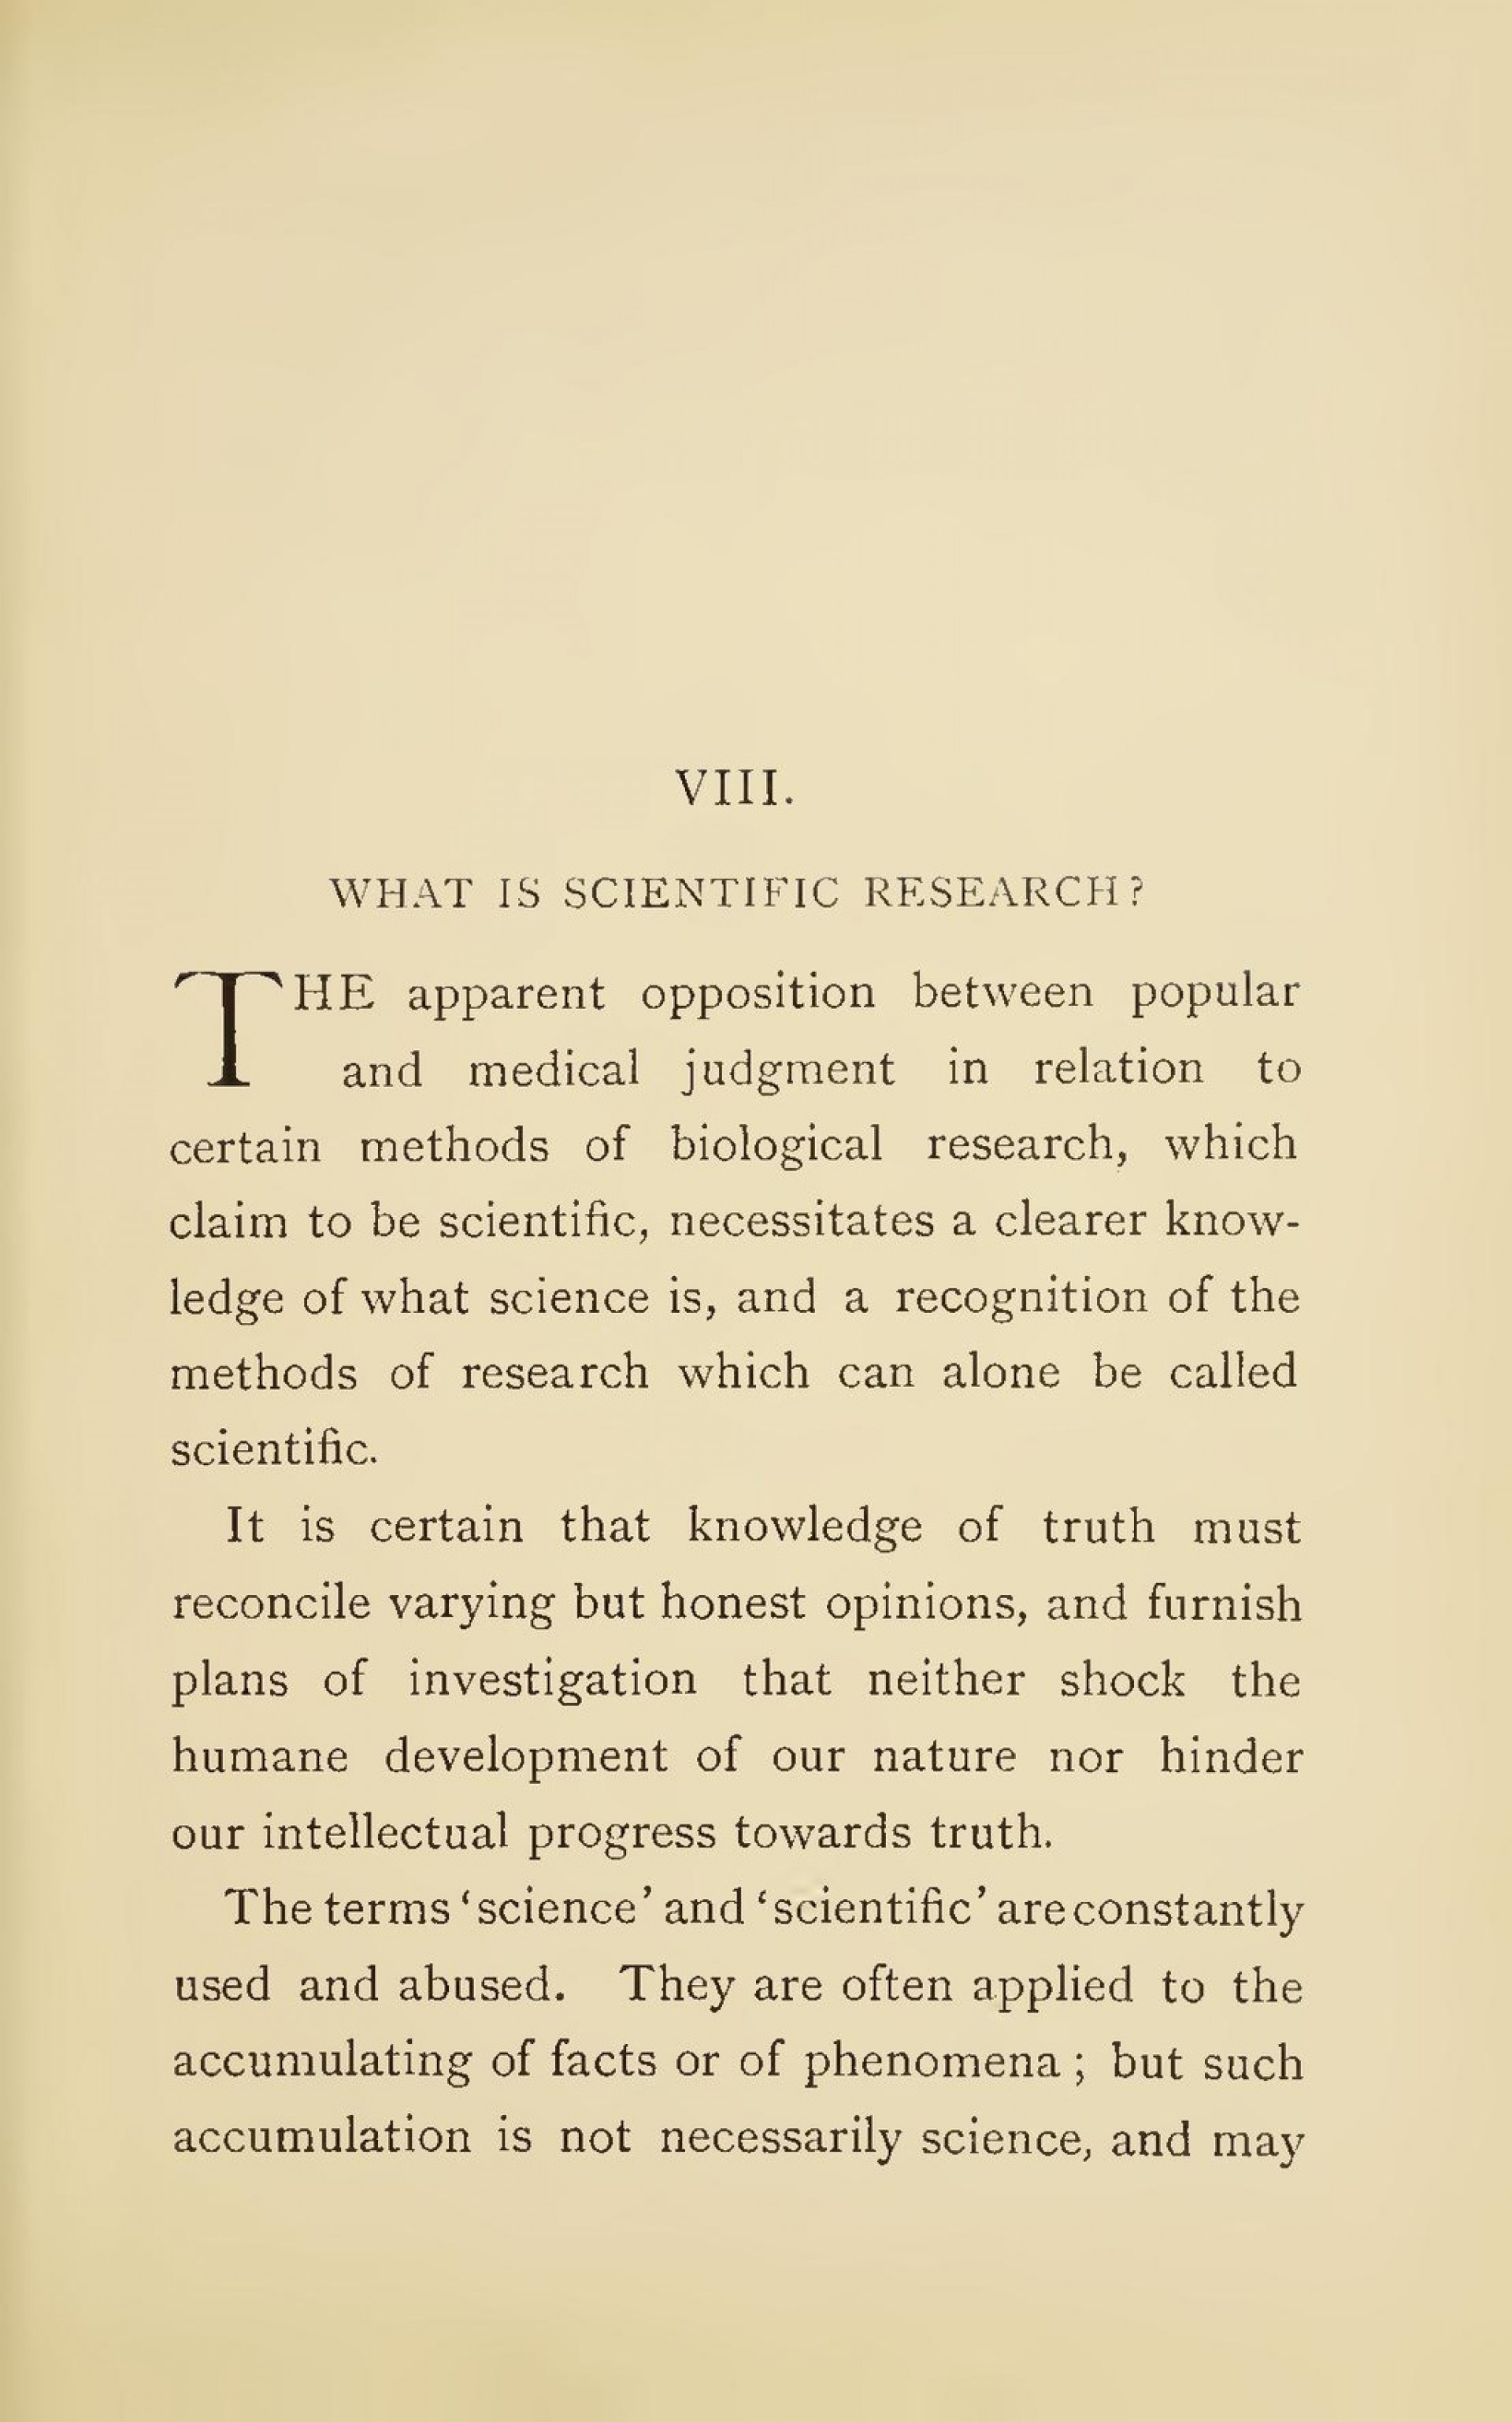 003 Page59 1024px Blackwell 1898 Scientific Method In Biology Pdf Researchs Surprising Research Papers Molecular Paper Topics 1920